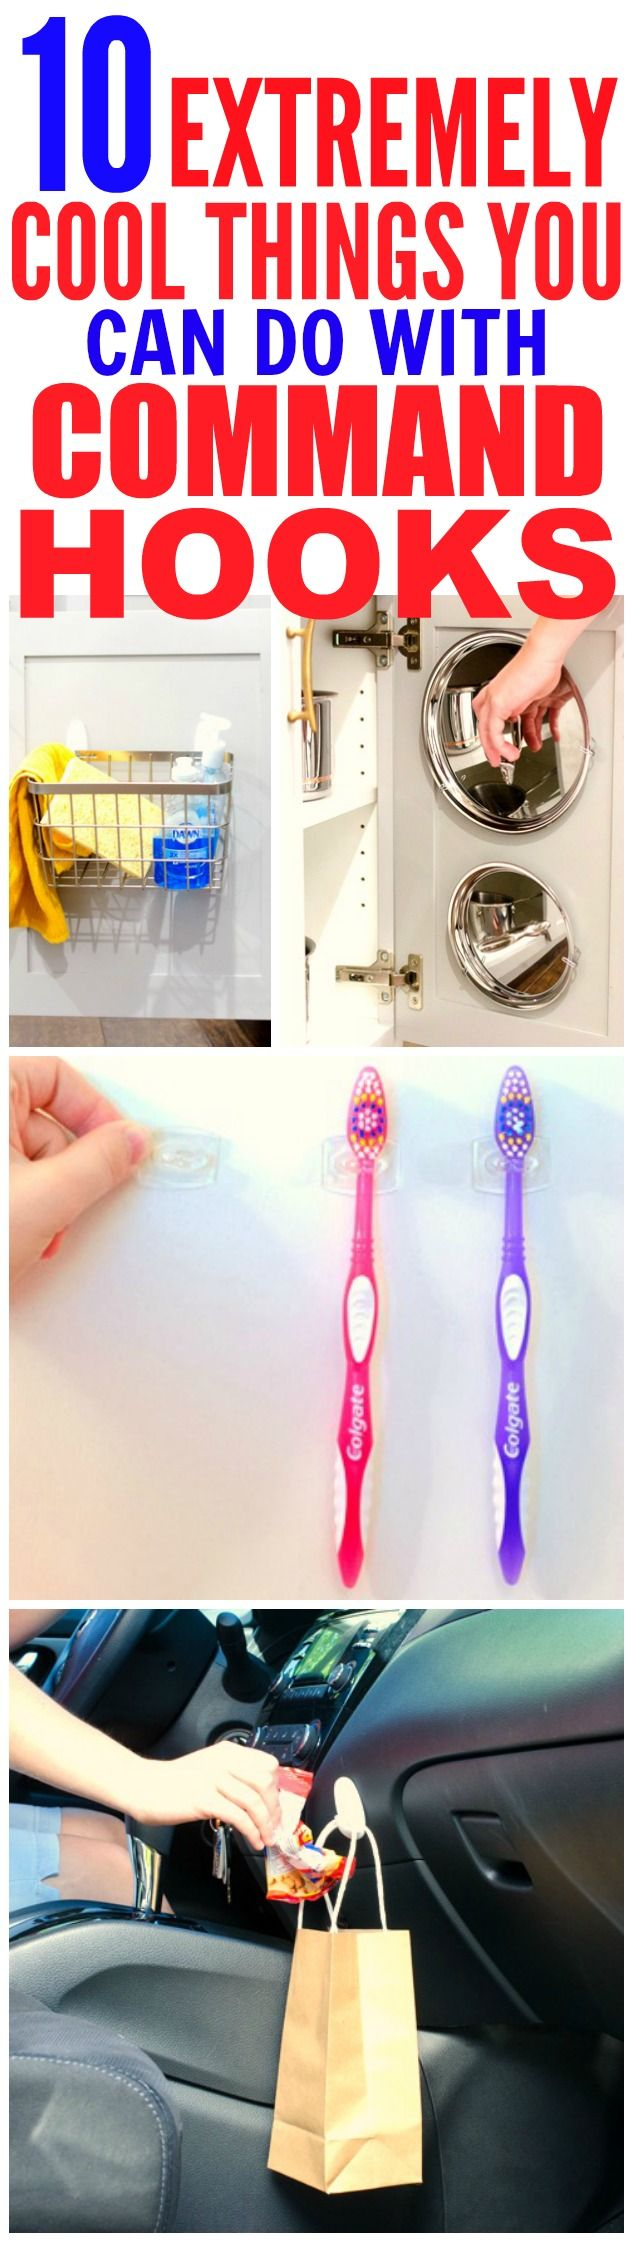 These 10 life changing command hook hacks are THE BEST! I'm so glad I found these GREAT tips! Now I can organize and decorate my home! Definitely pinning for later!